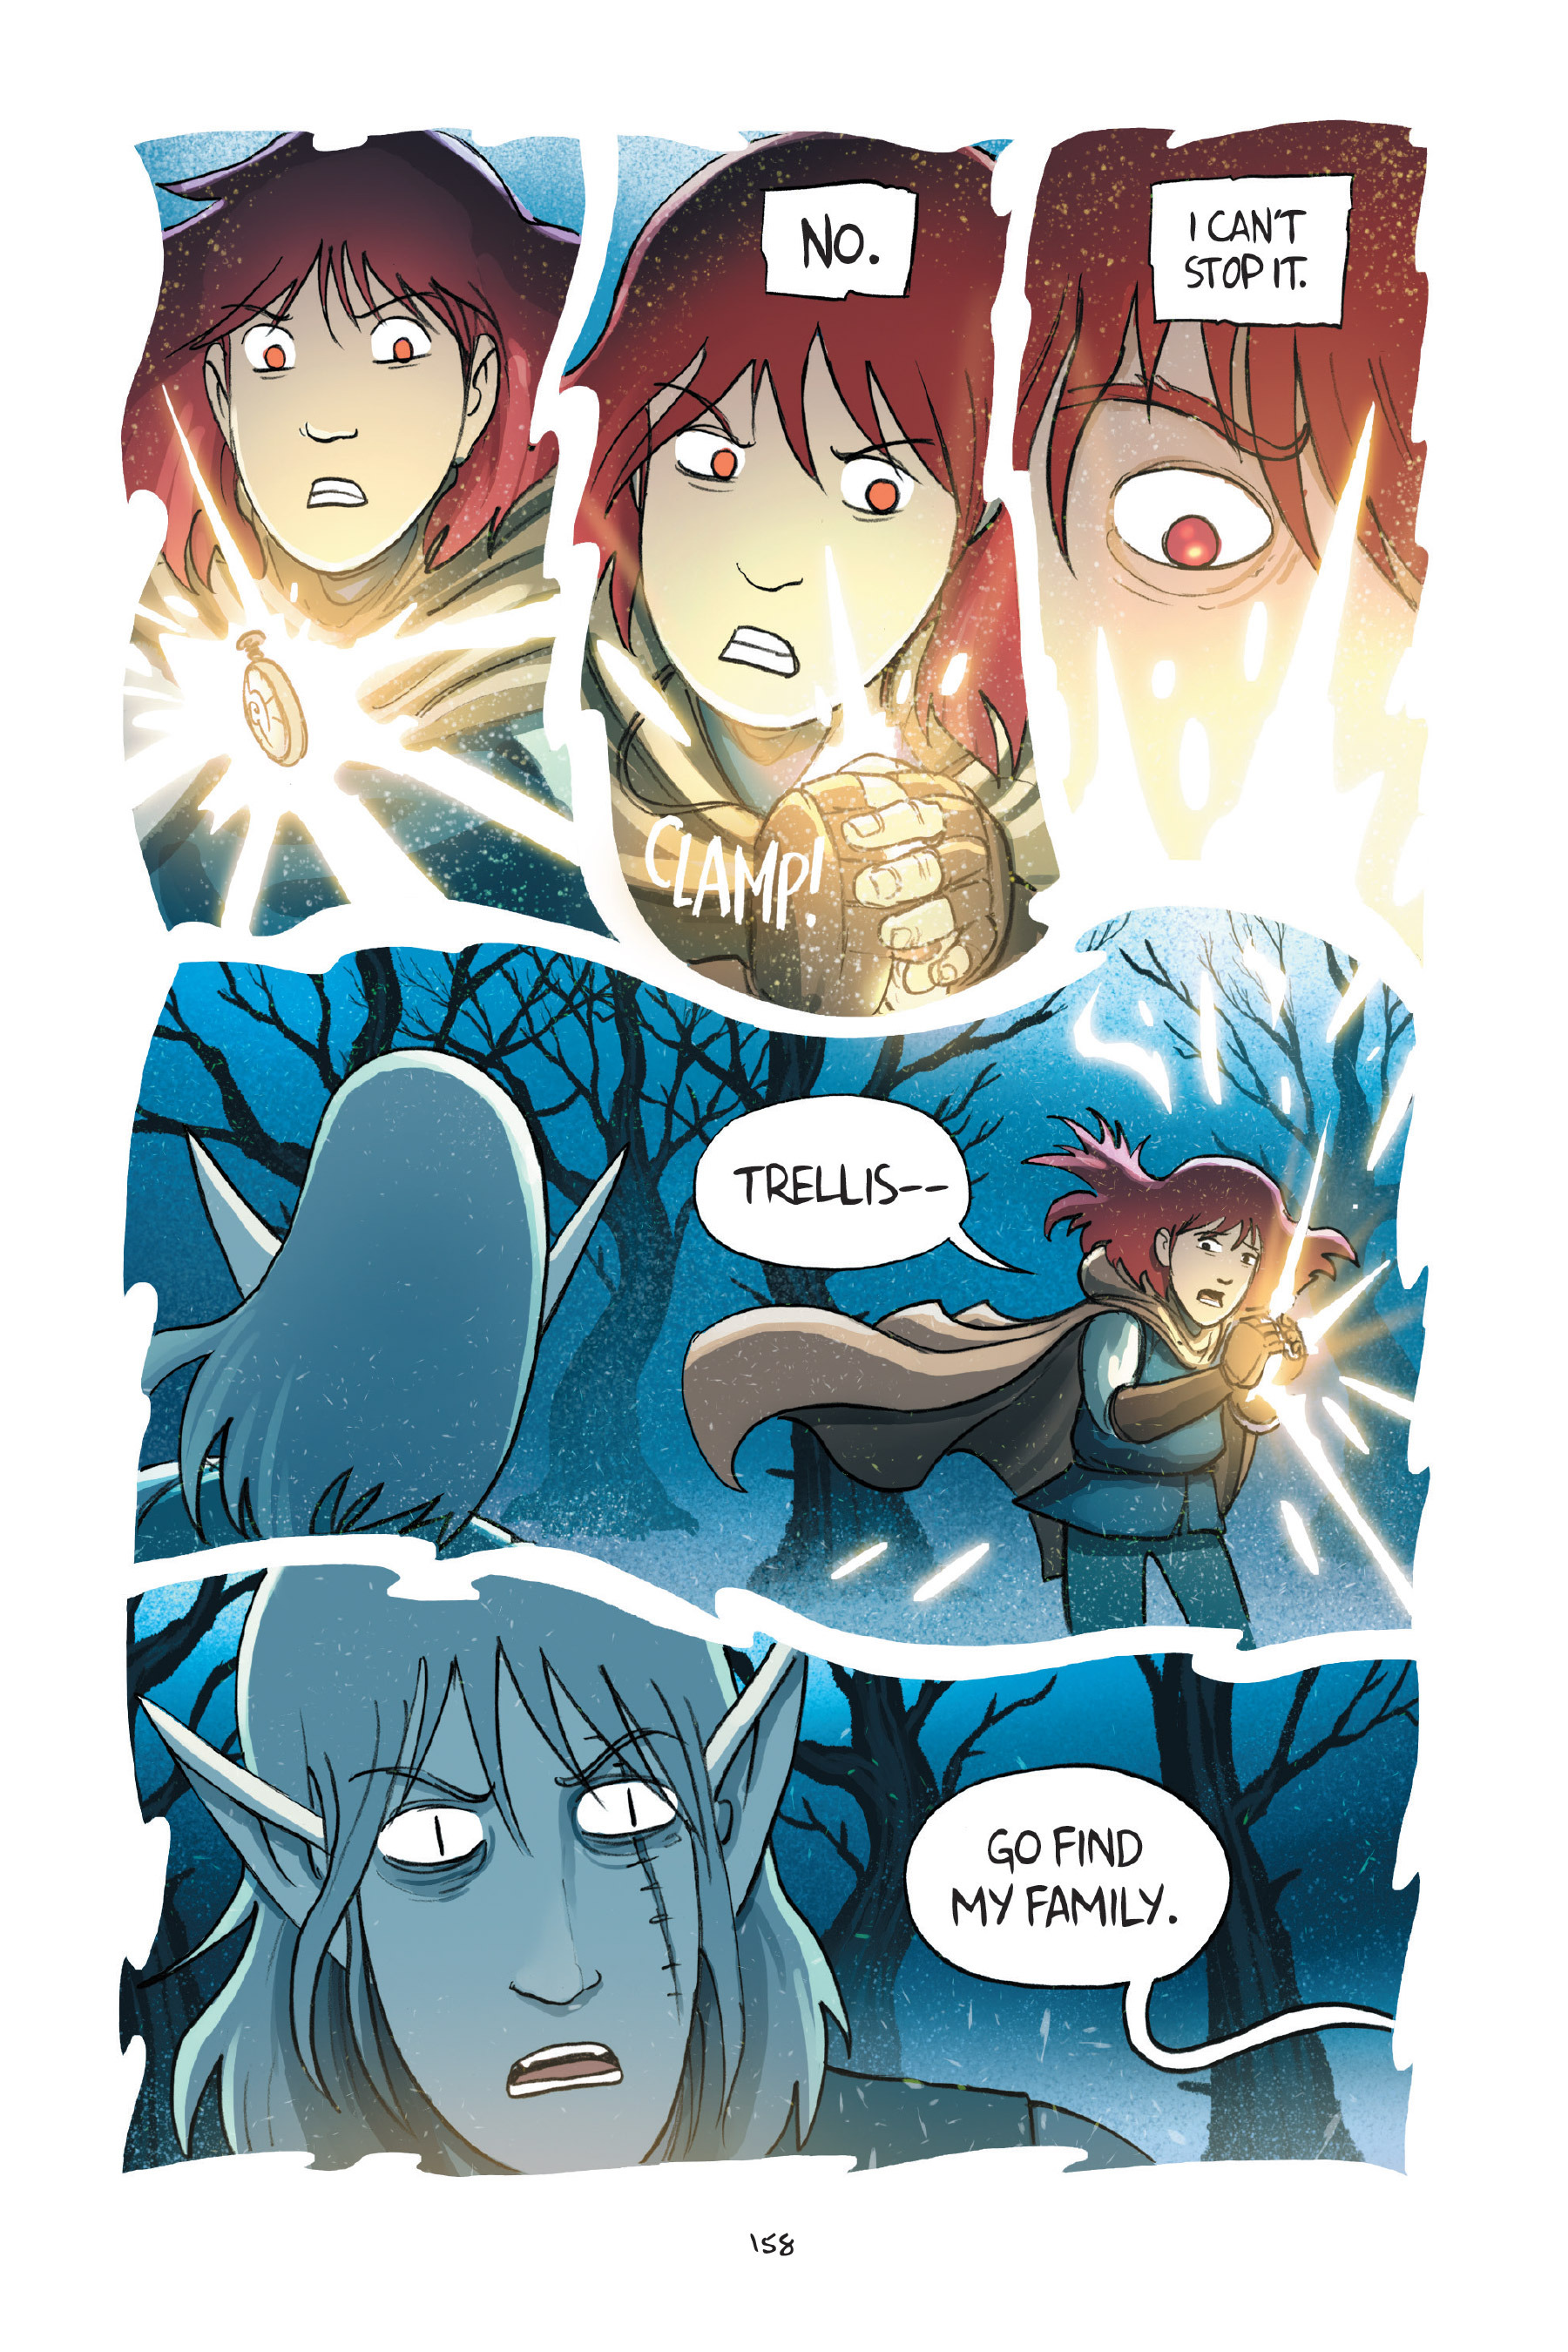 Read online Amulet comic -  Issue #7 - 158